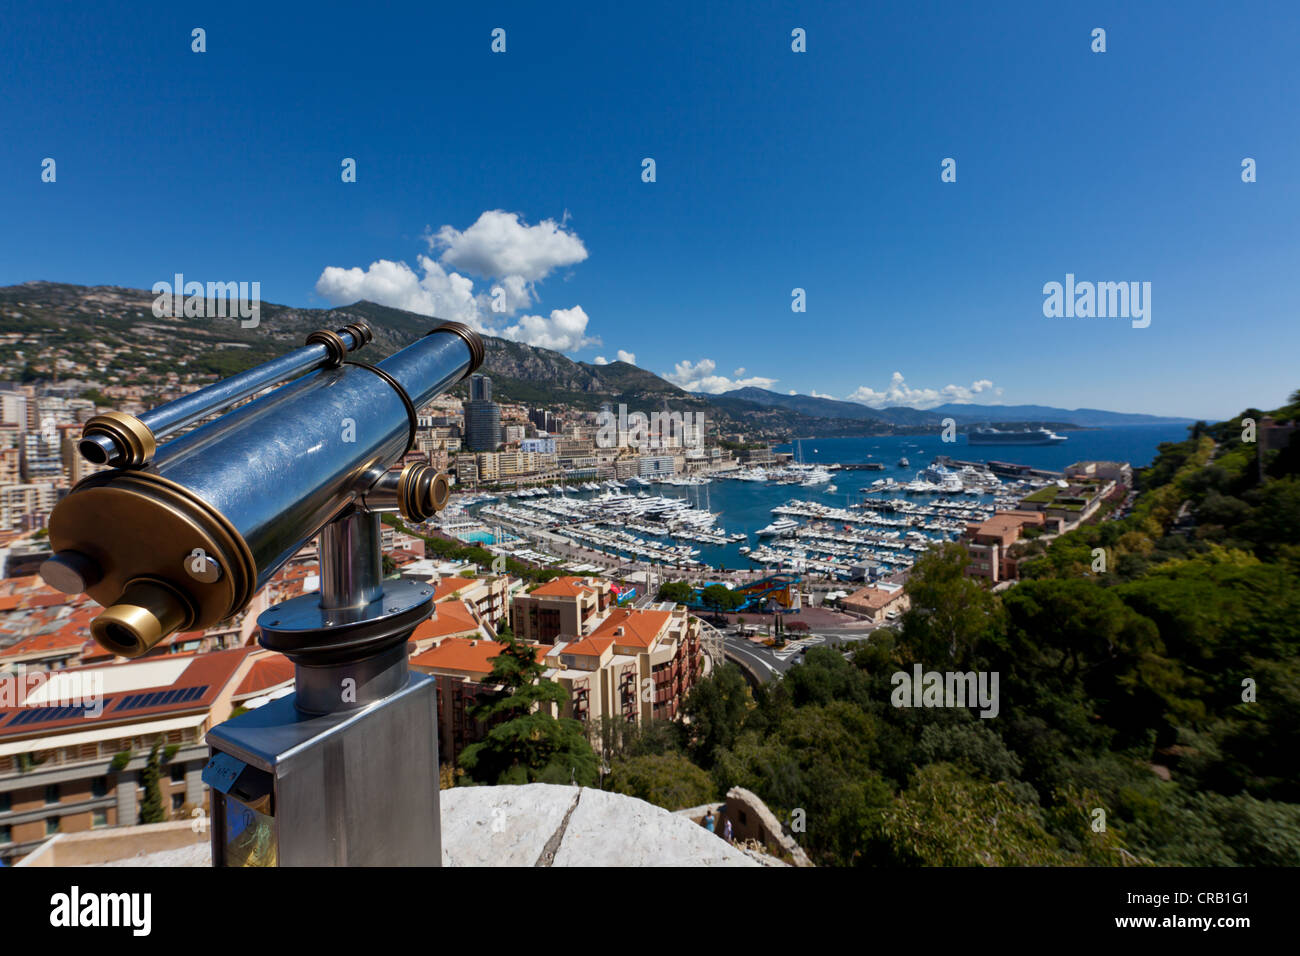 Telescope overlooking the harbour of Monaco, Port Hercule, Monte Carlo, Principality of Monaco, Côte d'Azur, - Stock Image